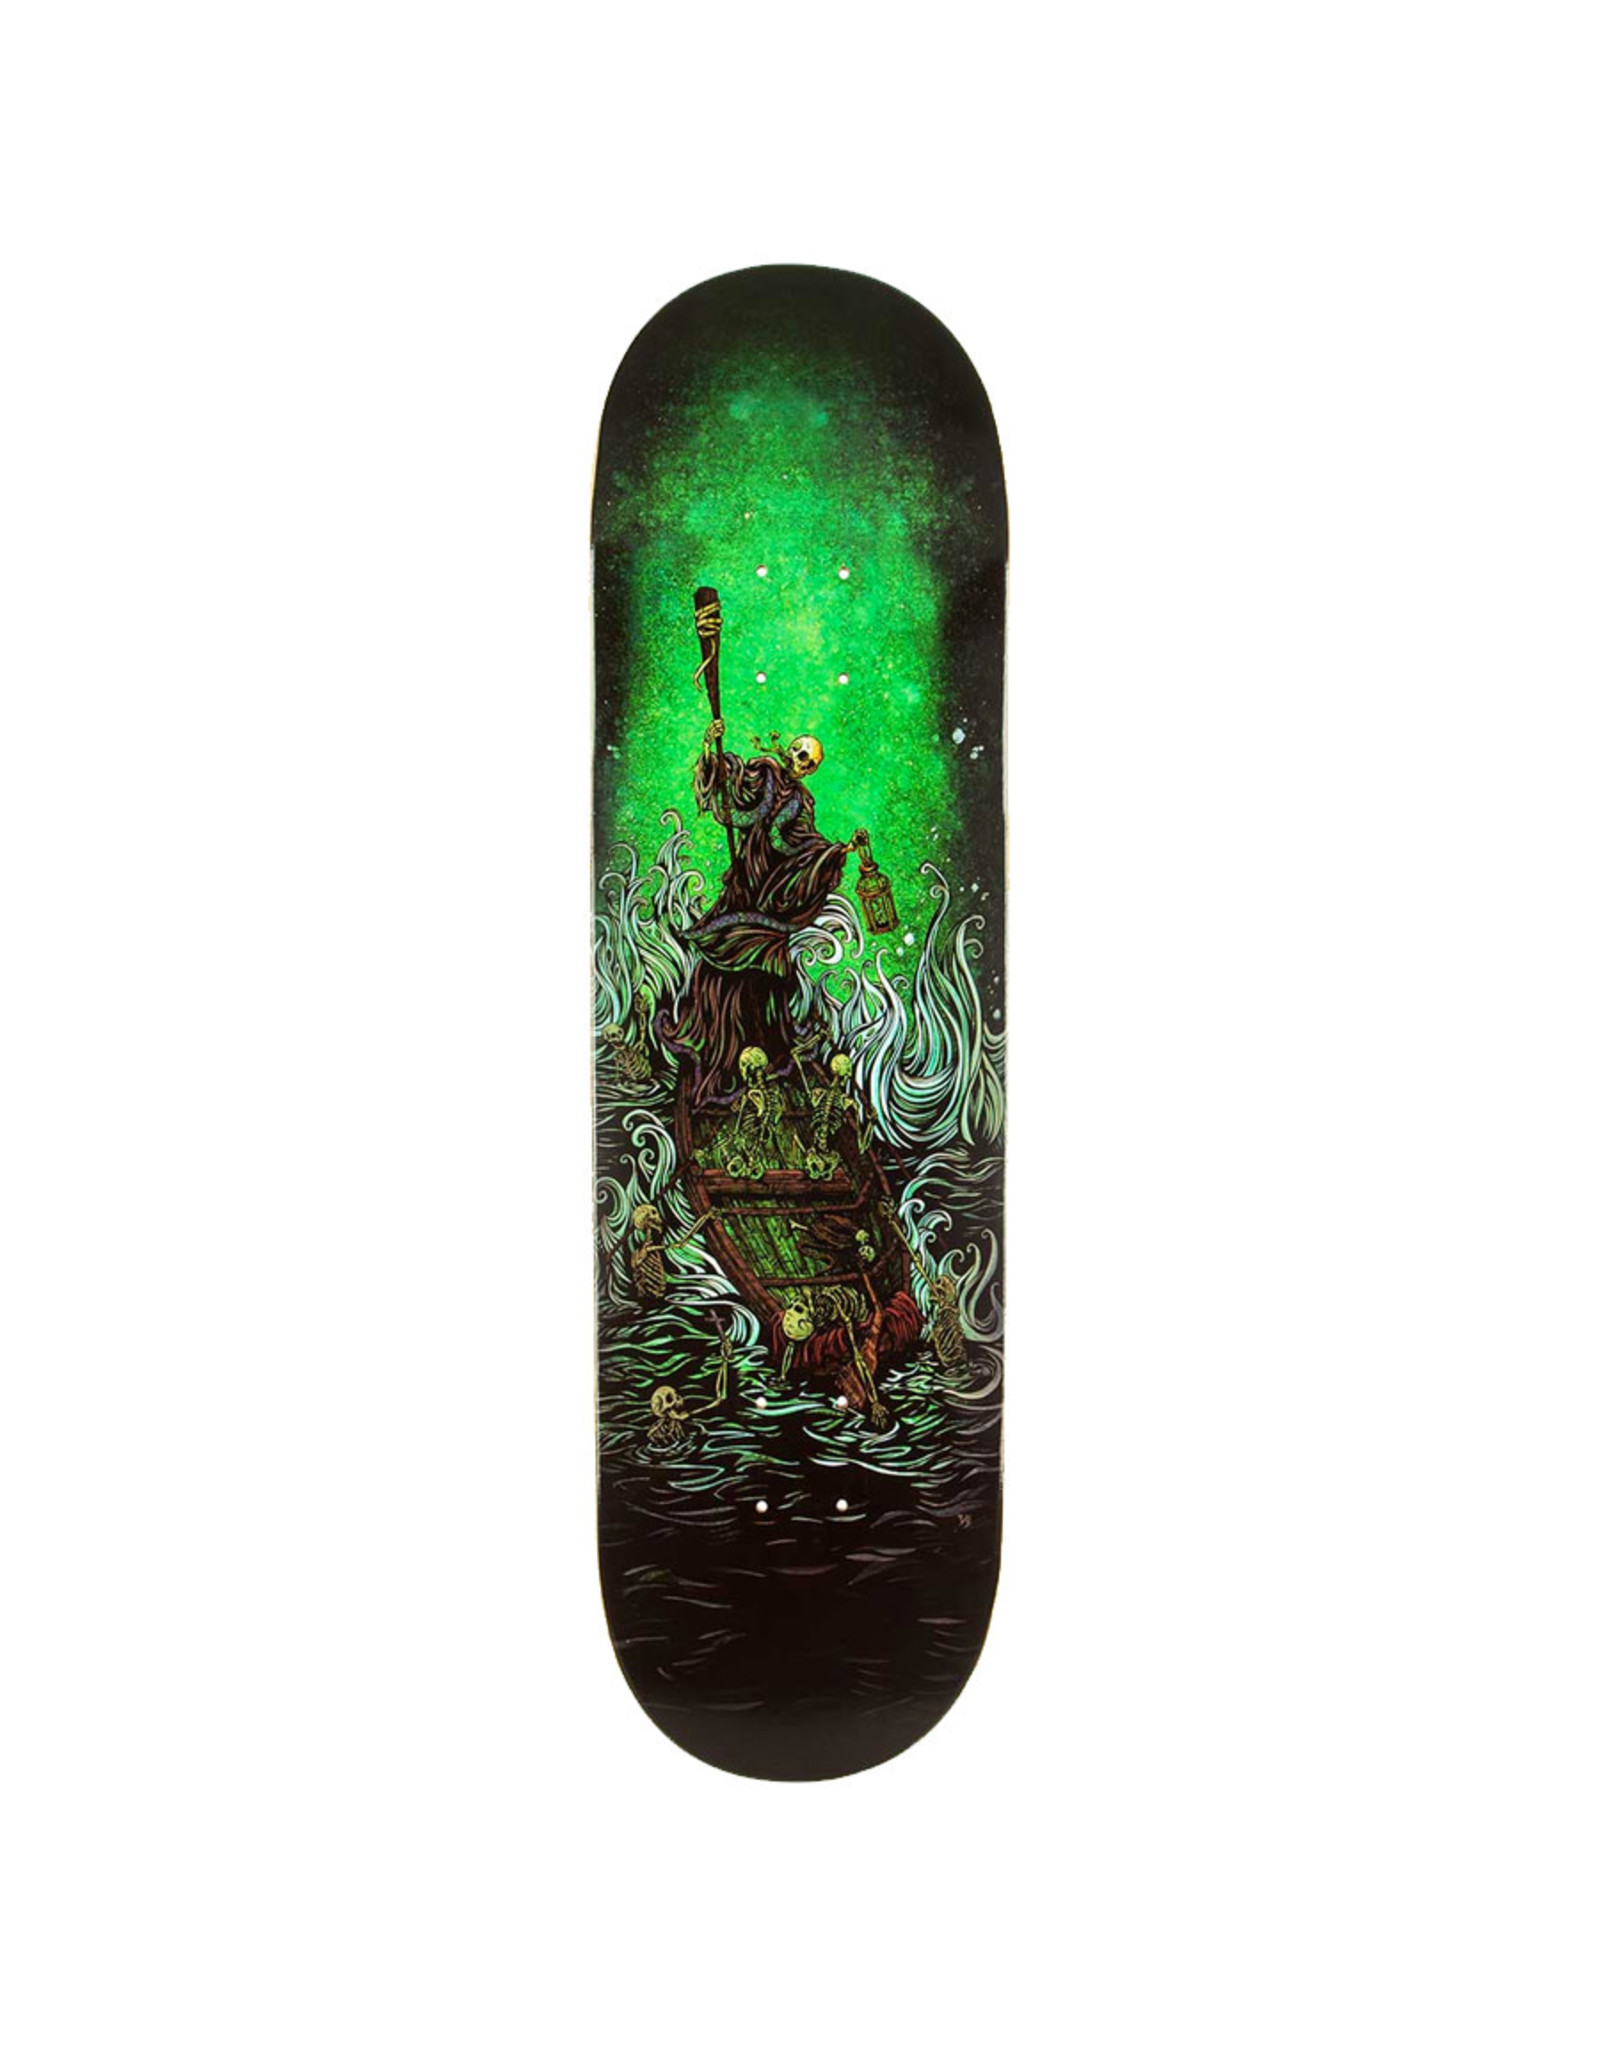 Techne Skateboards Techne Deck Boatman On The River Styx (8.38)